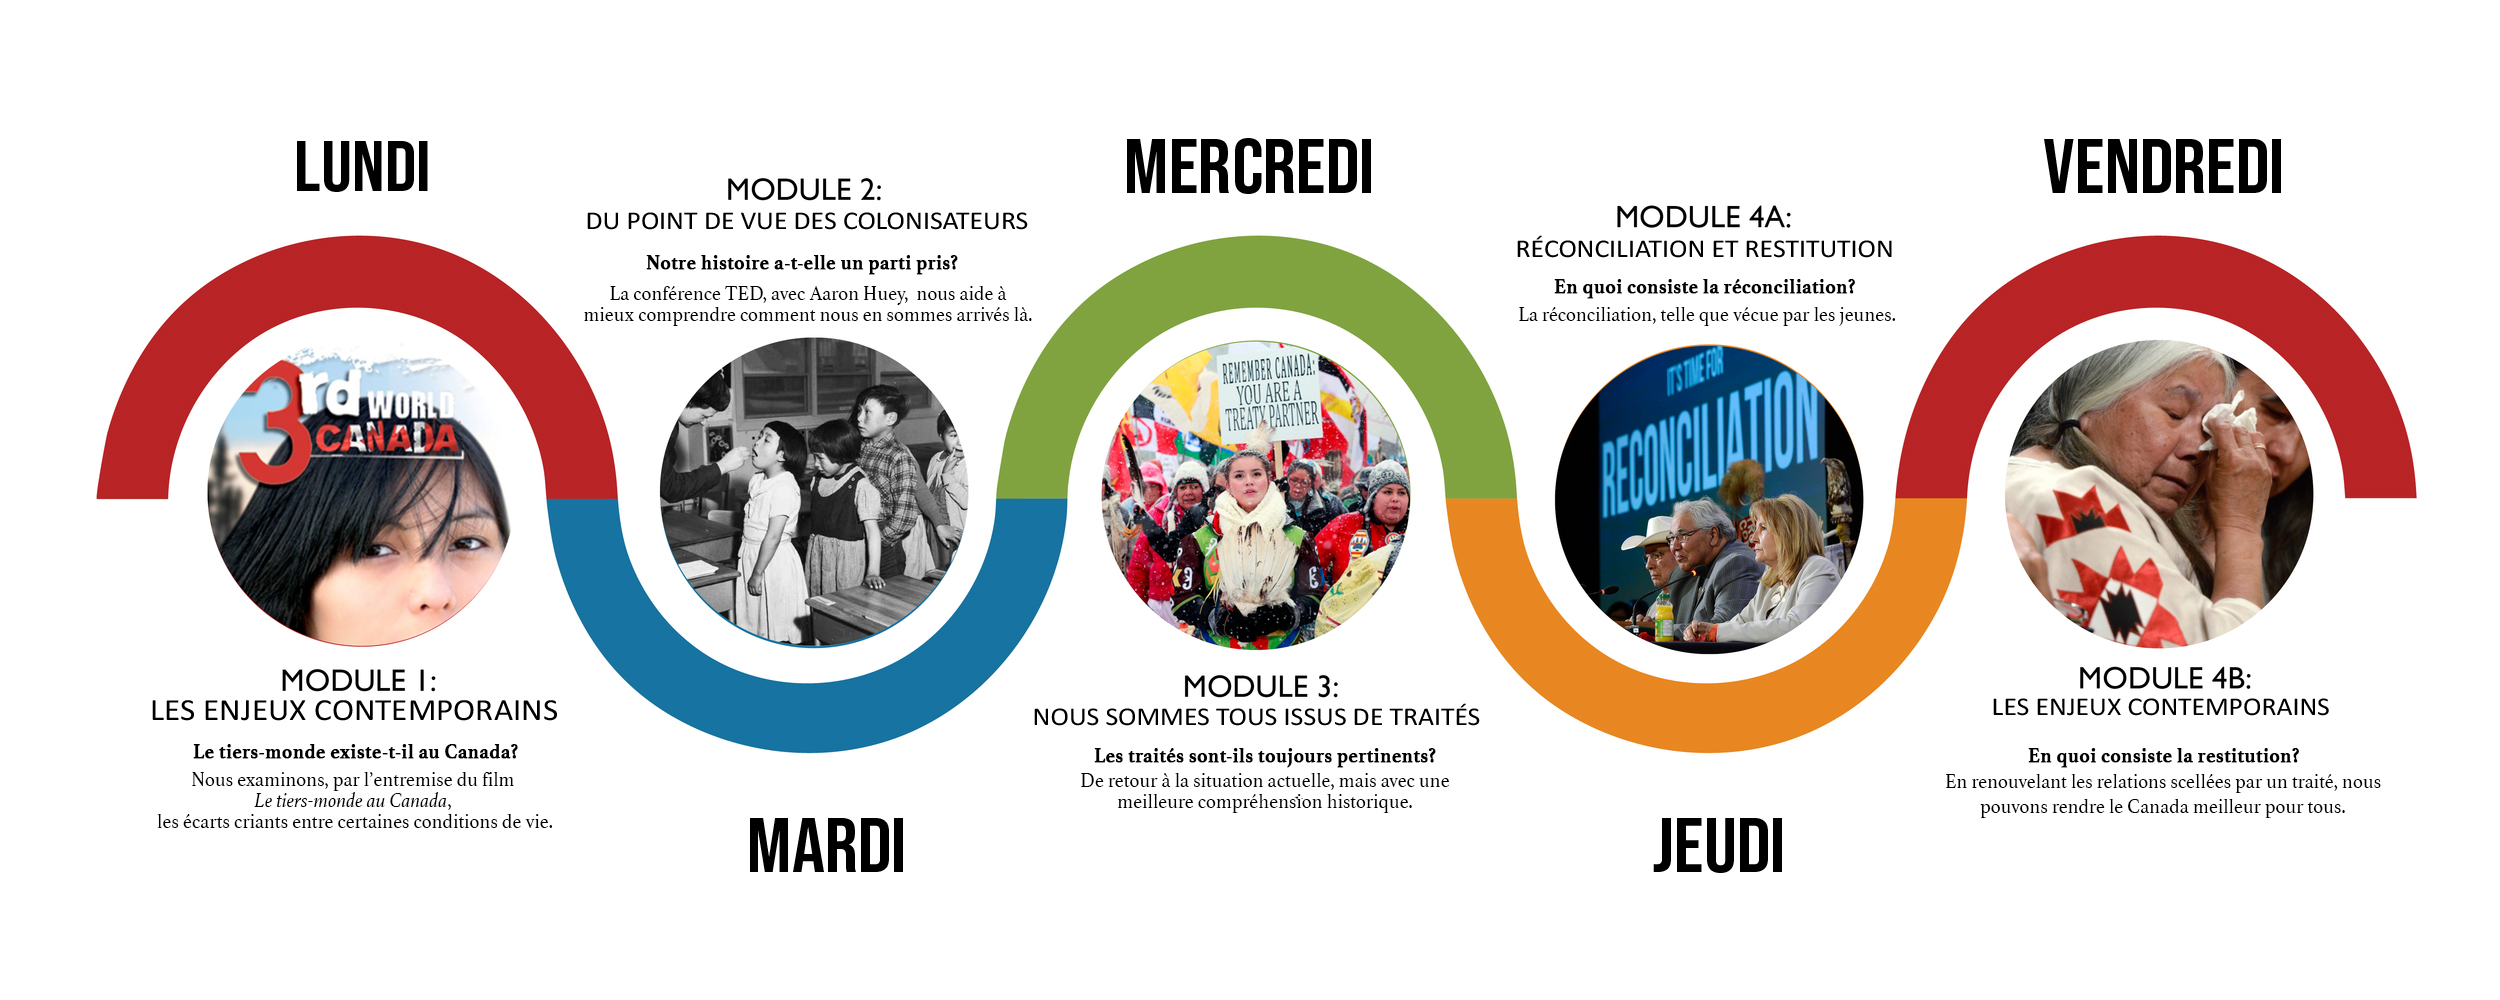 4Seasons_of_reconciliation_journey_graphic-FRENCH-1.jpg